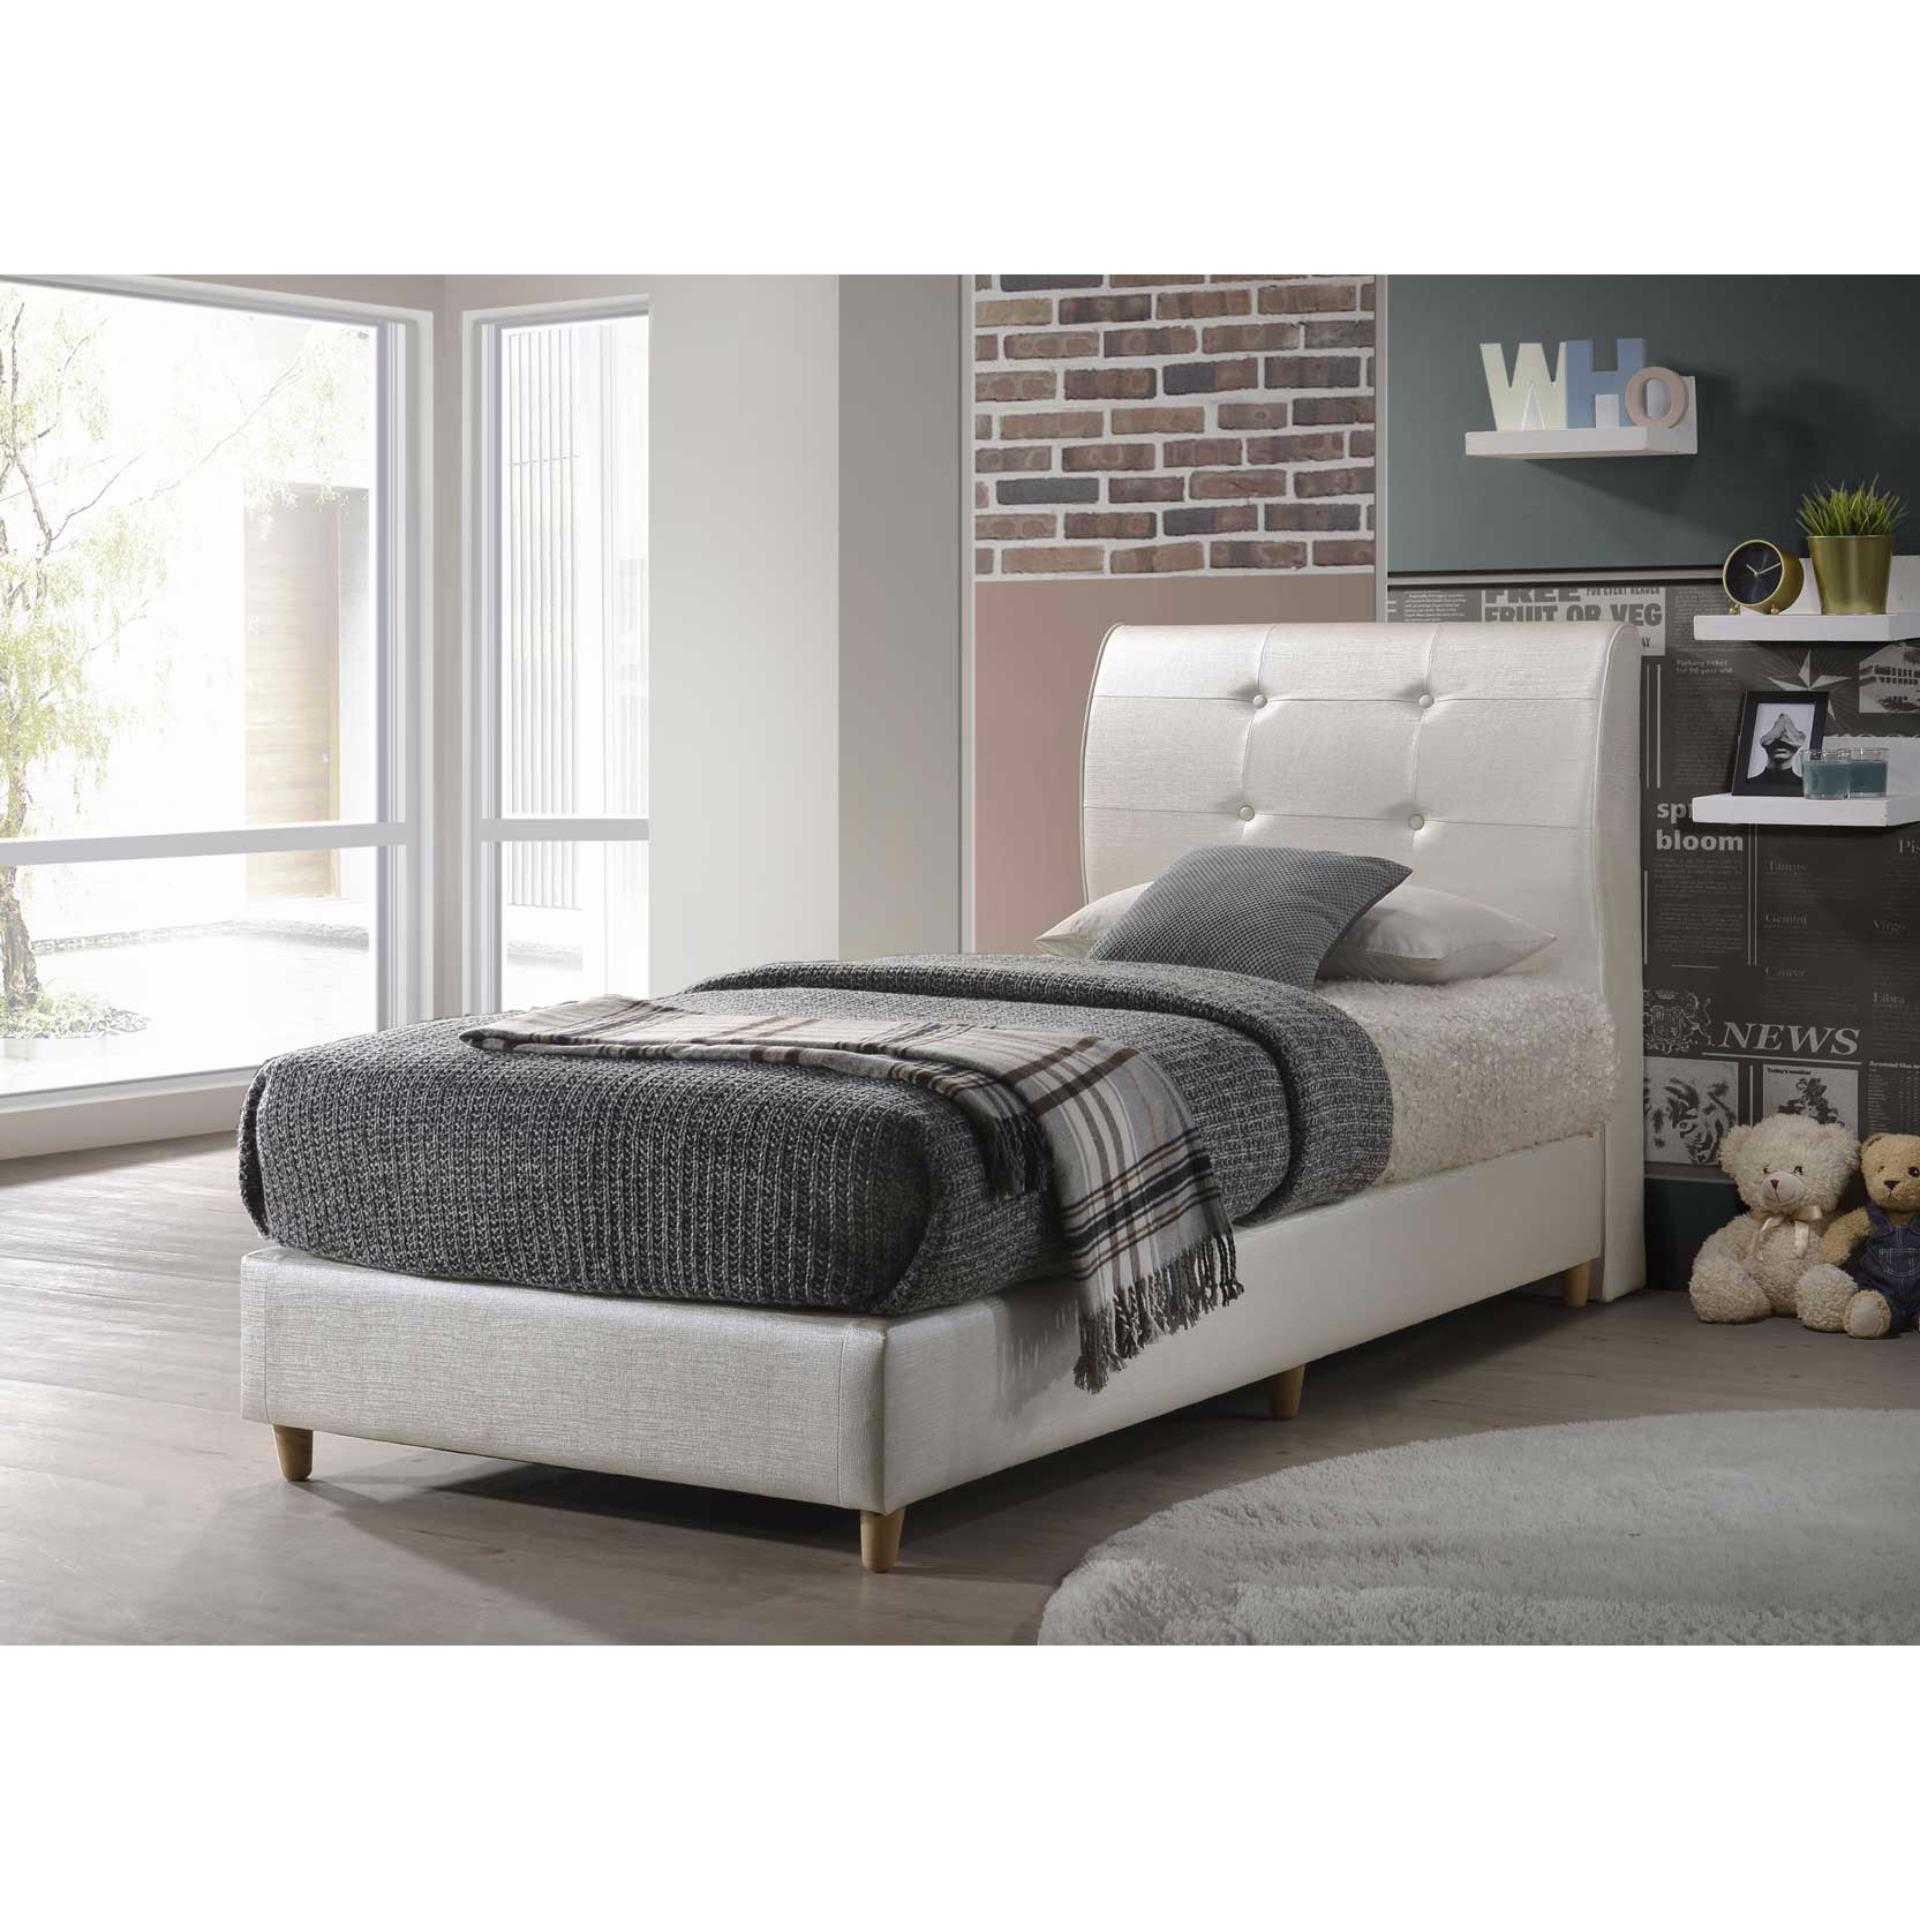 Amour Brand Classic Pu Leather Bed Frame Single Size Super Single